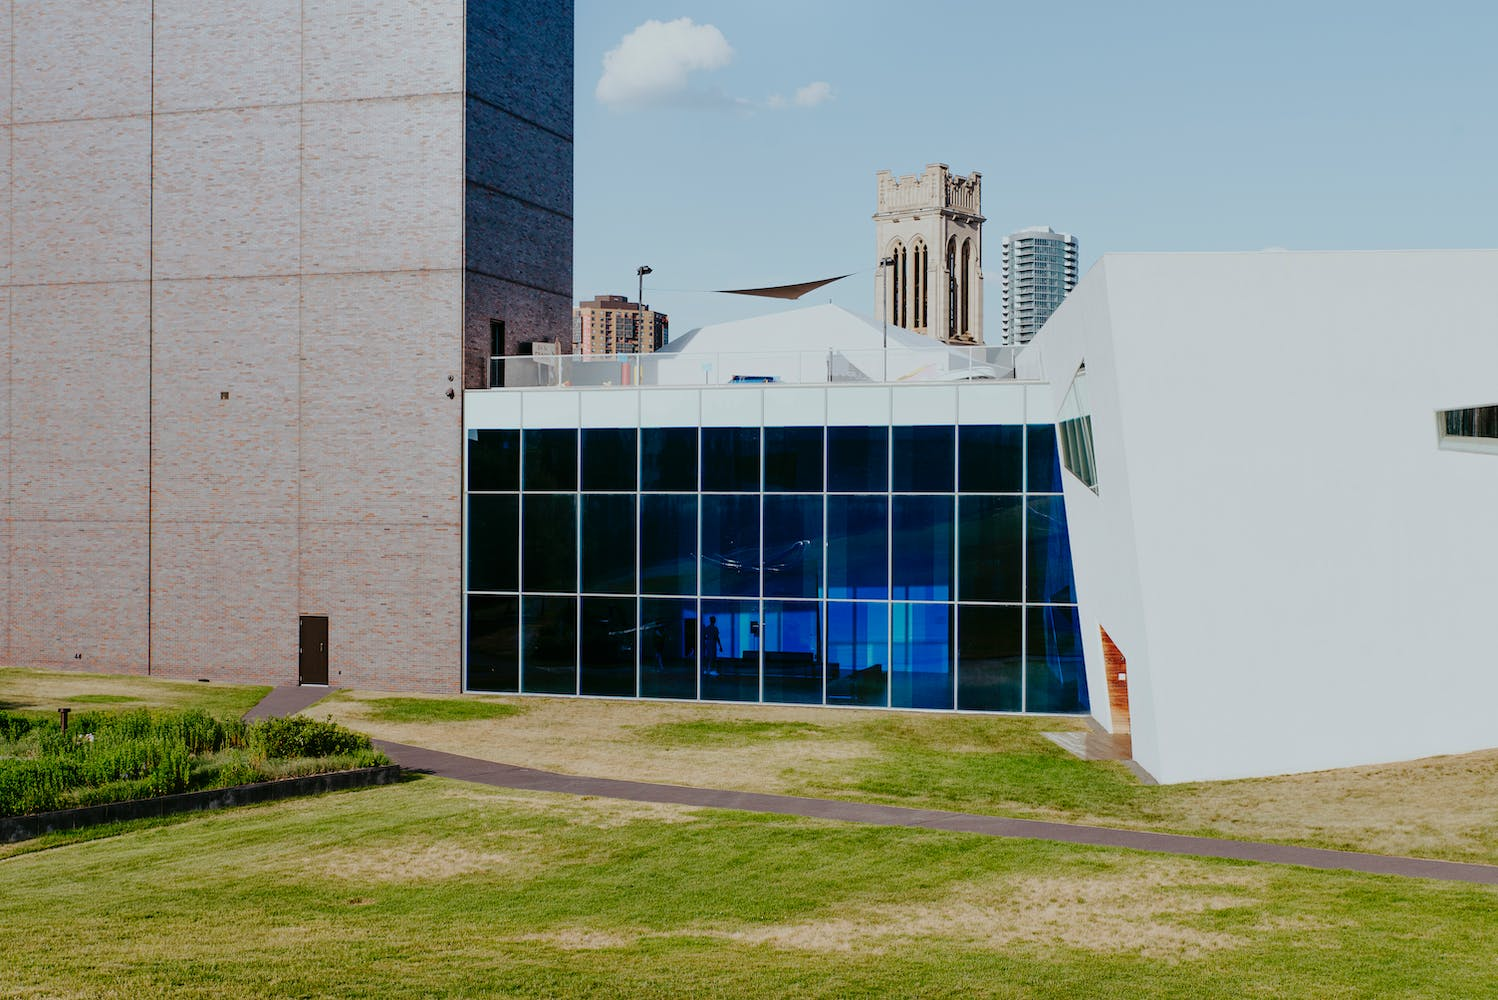 Building with large glass wall covered in blue film, with grass in foreground